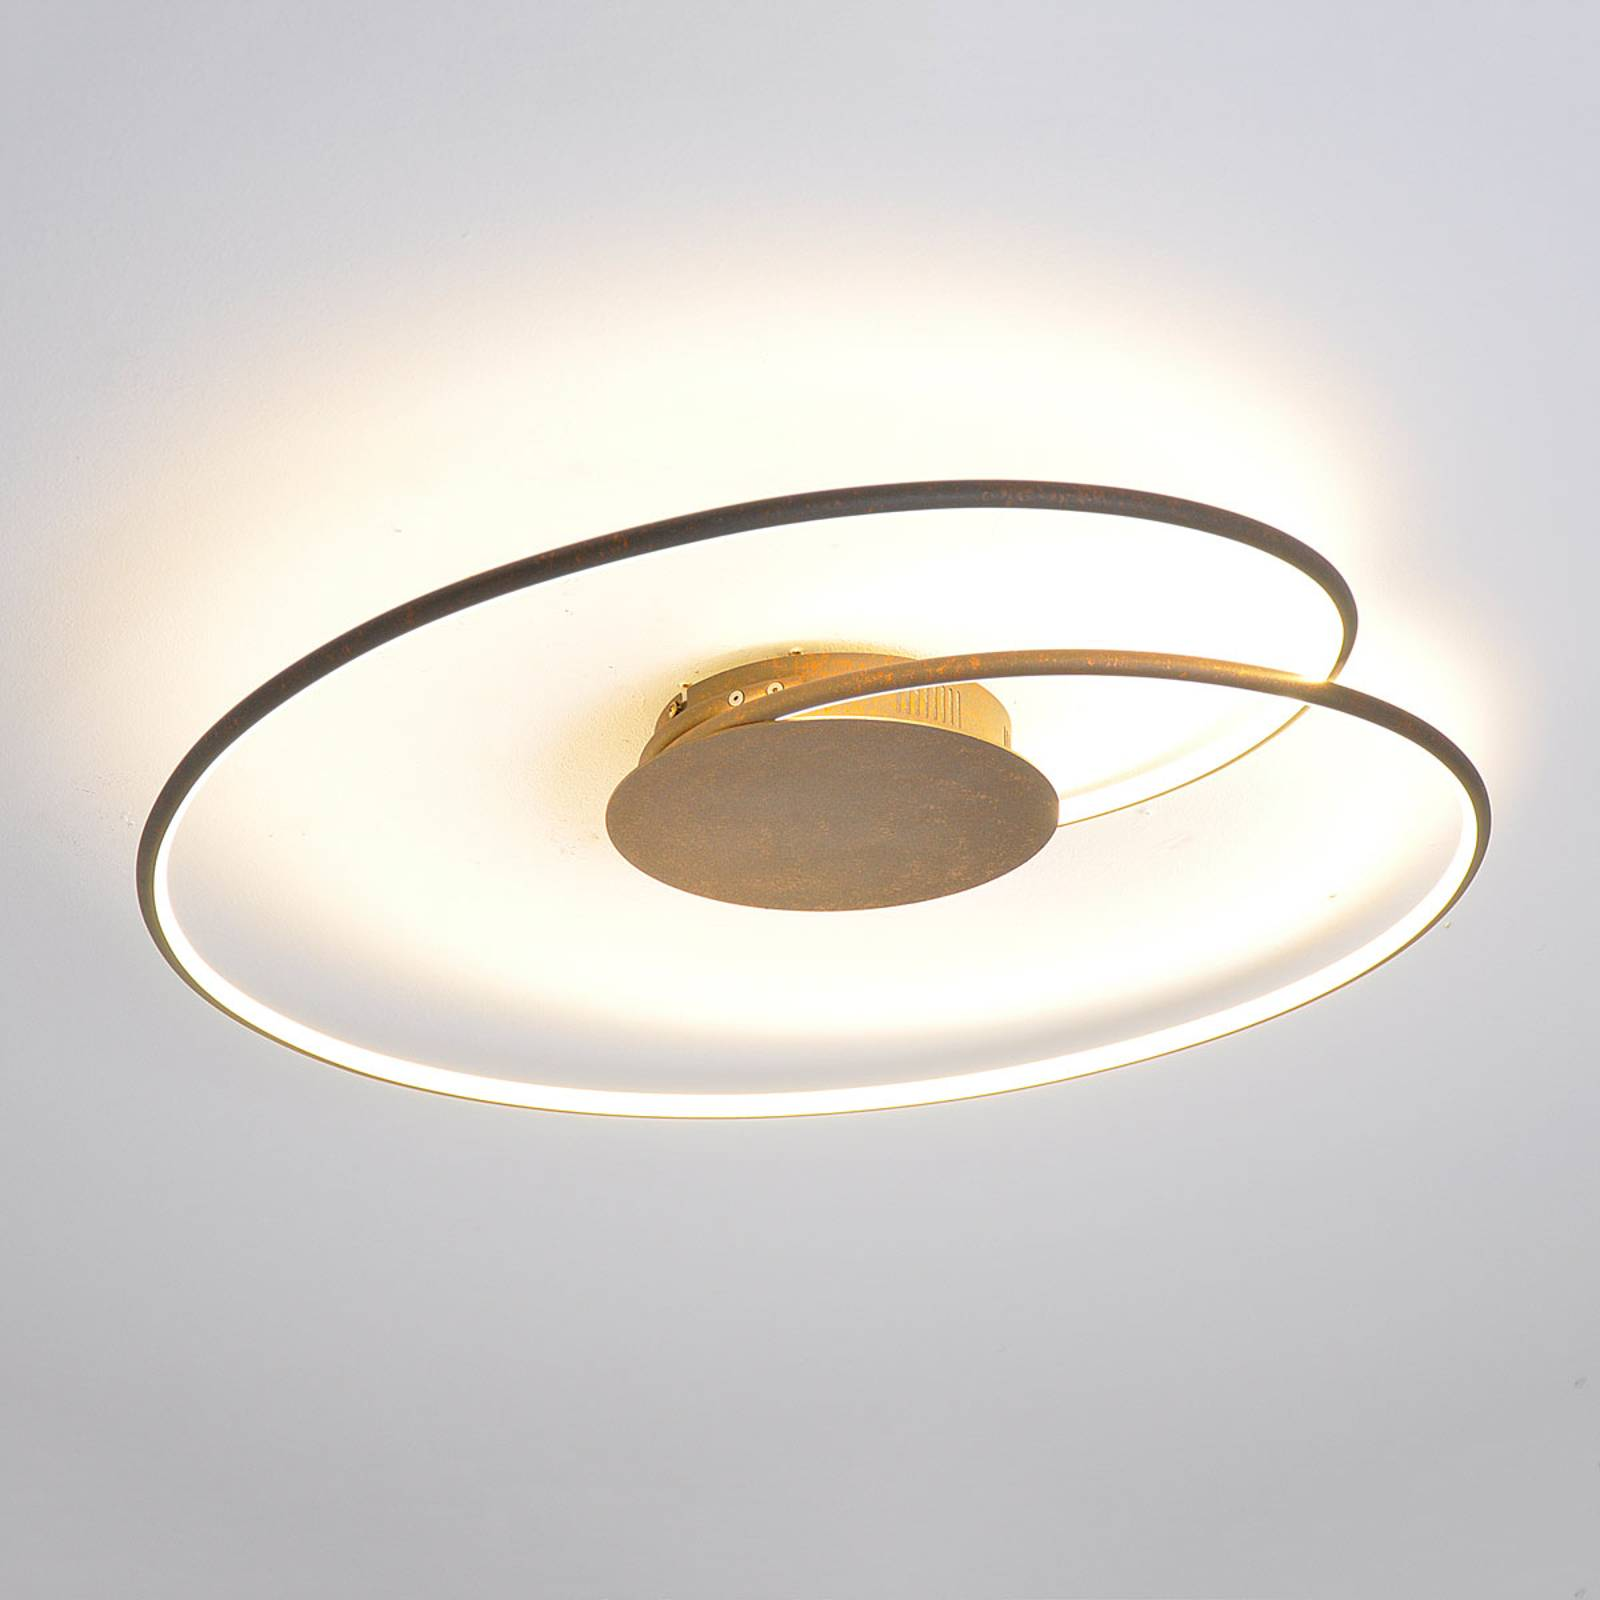 Attractive LED ceiling light Joline in rusty brown from Lindby